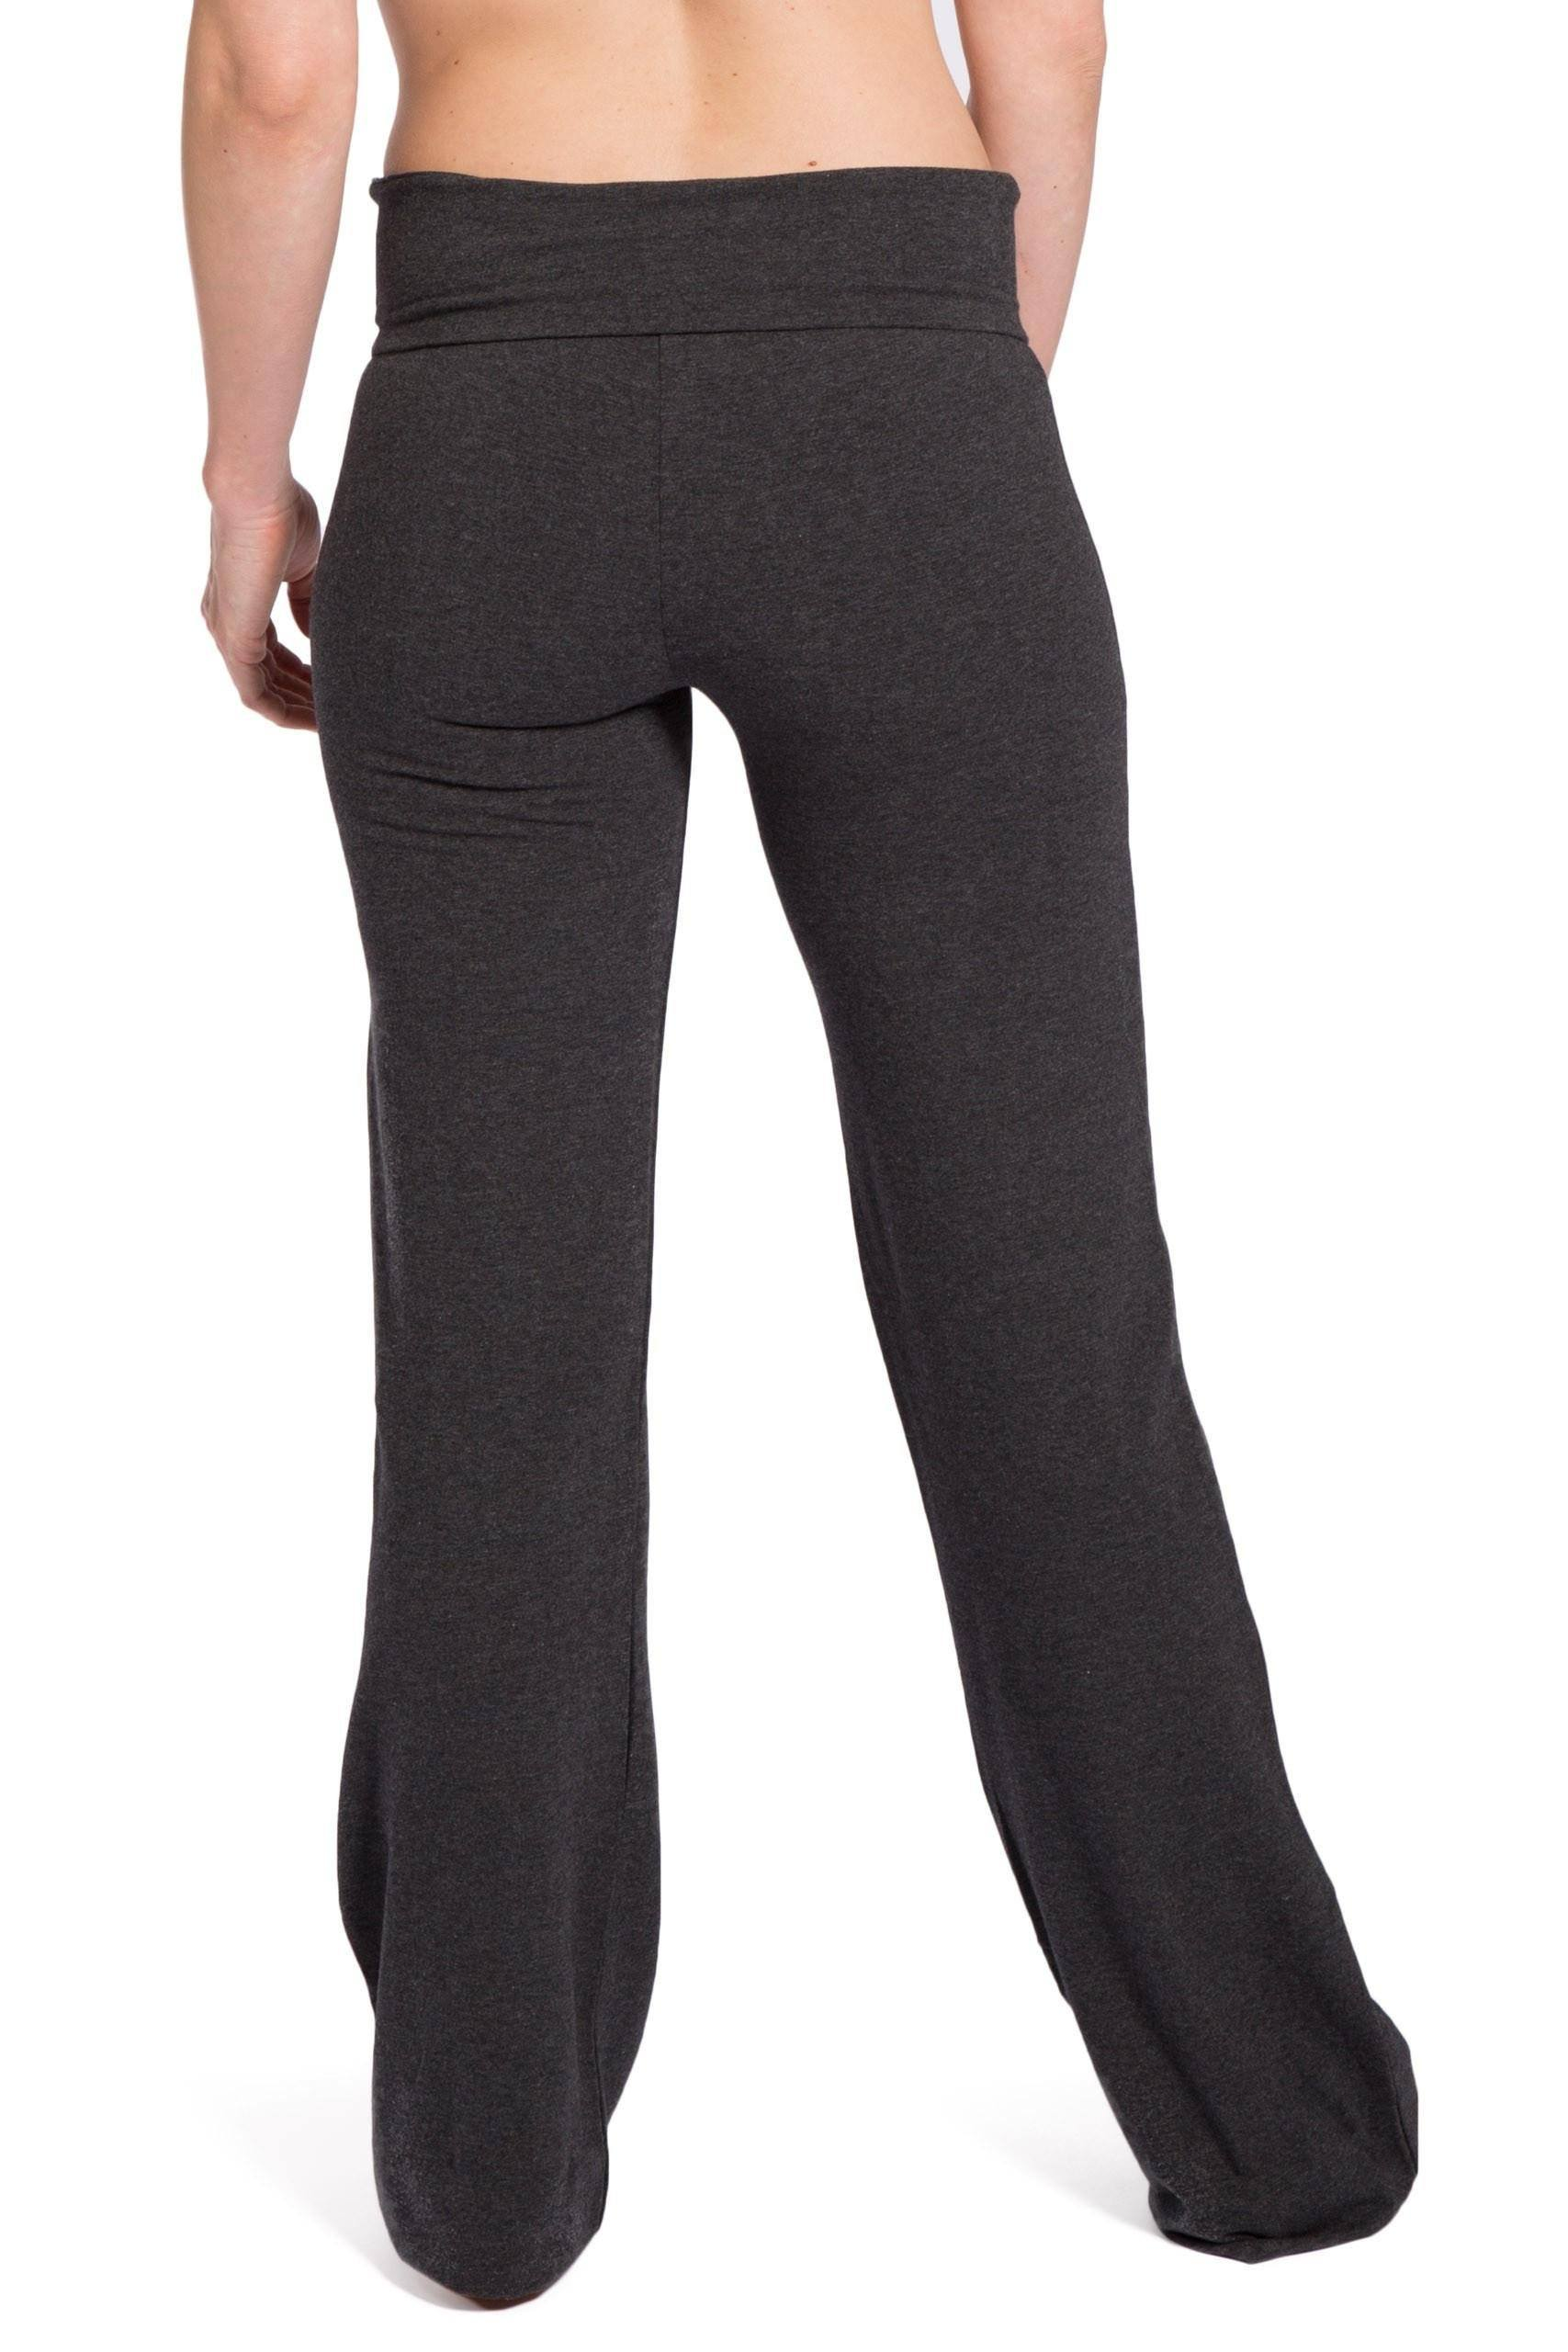 new high quality thoughts on new arrive Women's EcoFabric™ Boot Leg Yoga Pant with Fold Over Waistband